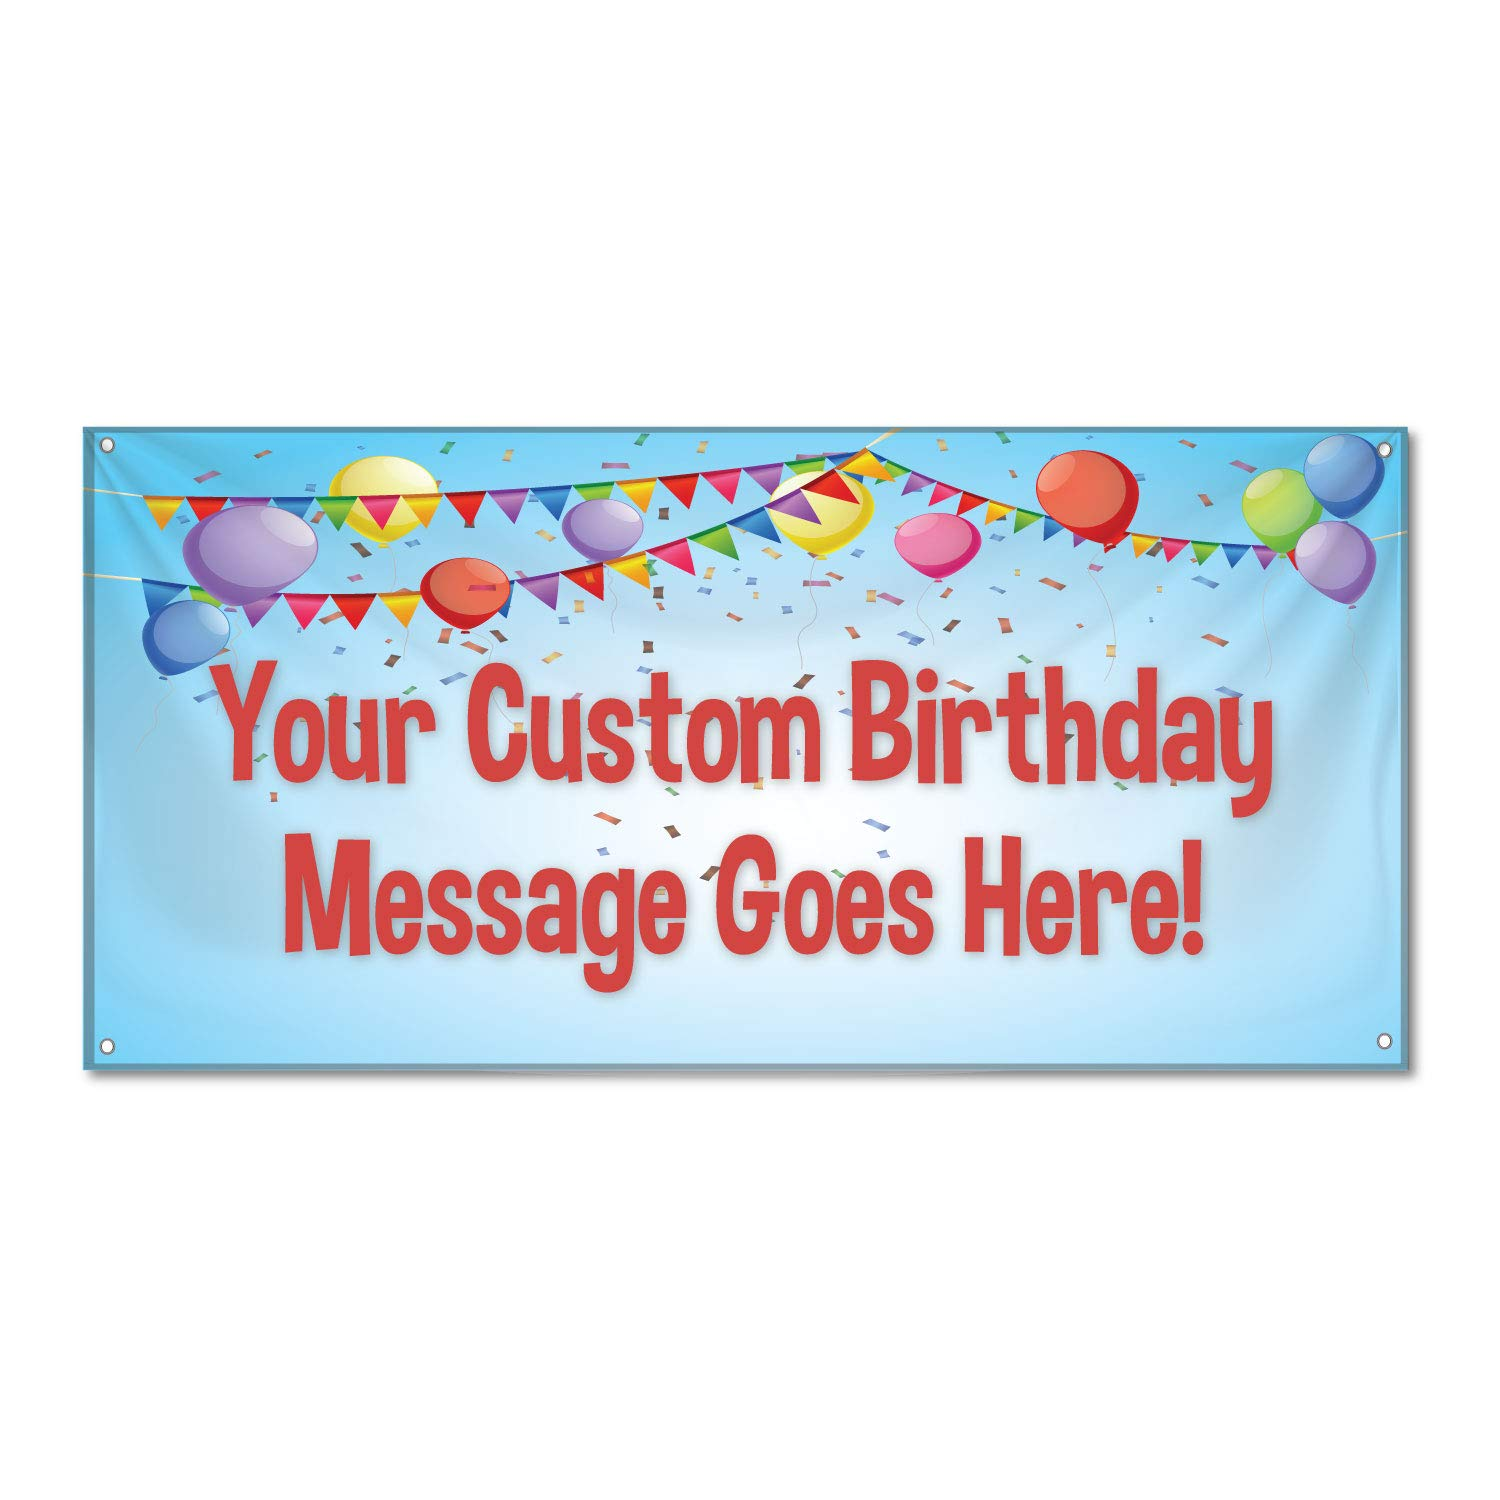 HALF PRICE BANNERS |Custom Birthday Confetti Vinyl Banner-Heavy Duty Outdoor 3X5 foot-Blue|Includes Ball Bungees & Zip Ties|Easy Hang -Made in the USA